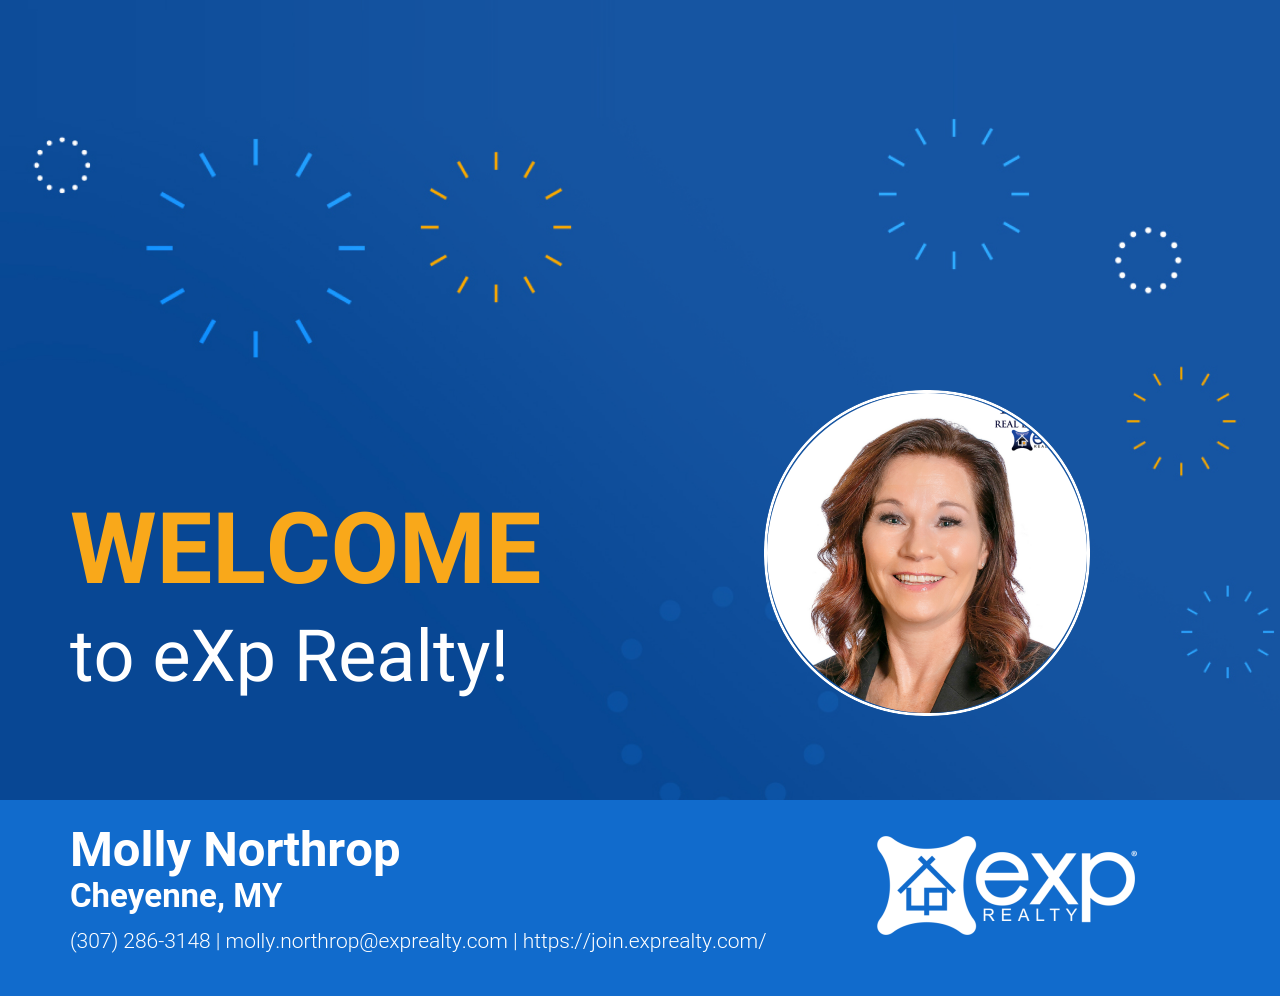 Molly Northrop Joined eXp Realty!